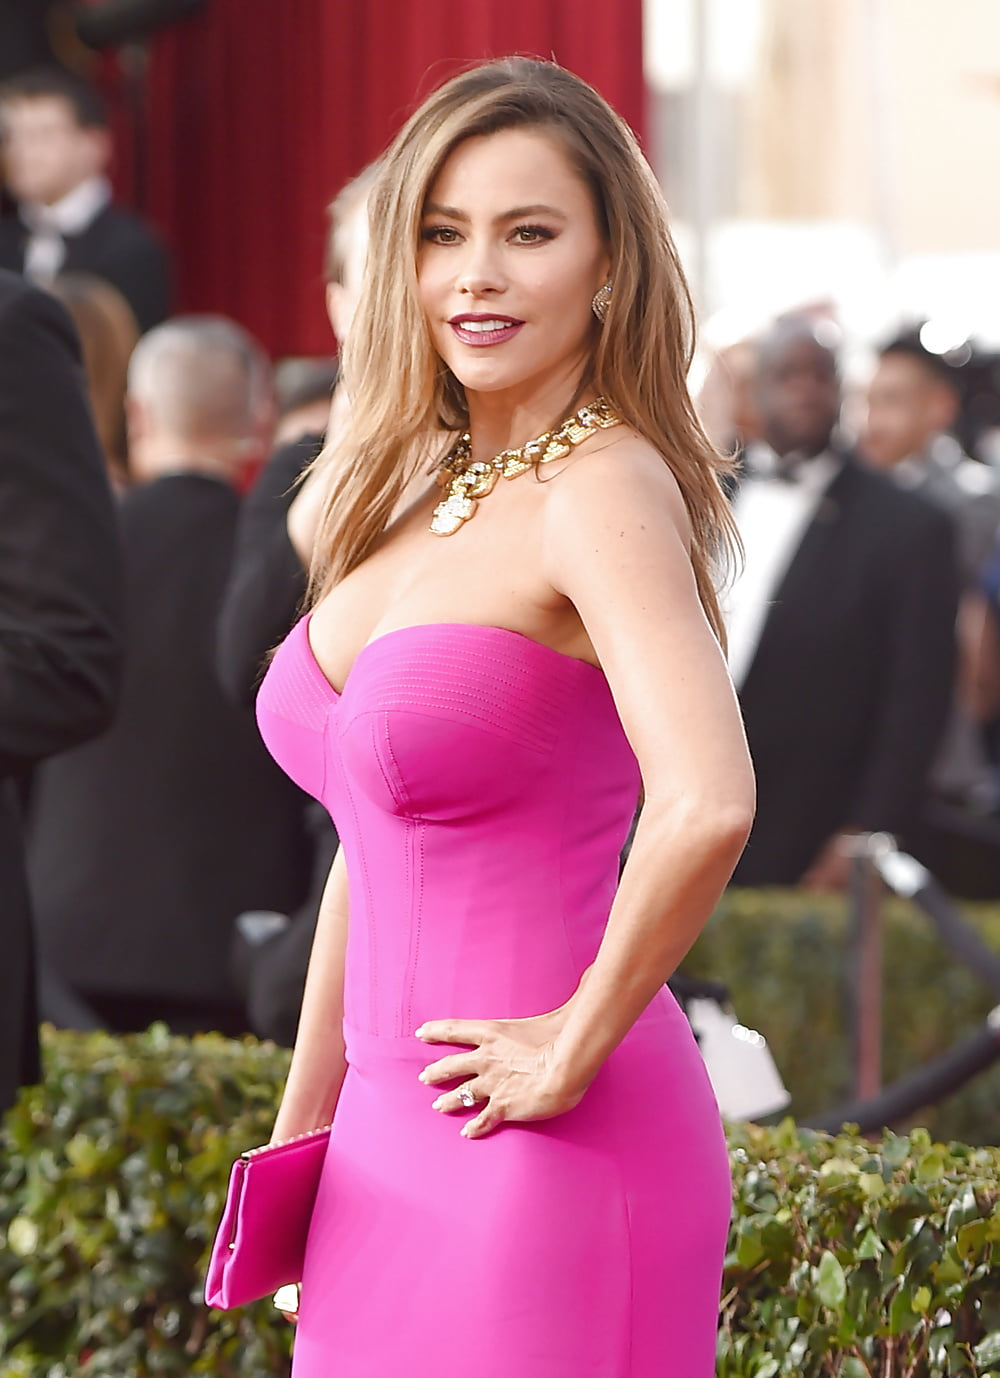 Sofia Vergara Poses Nude, Talks Weight Loss, Plastic Surgery In Women's Health